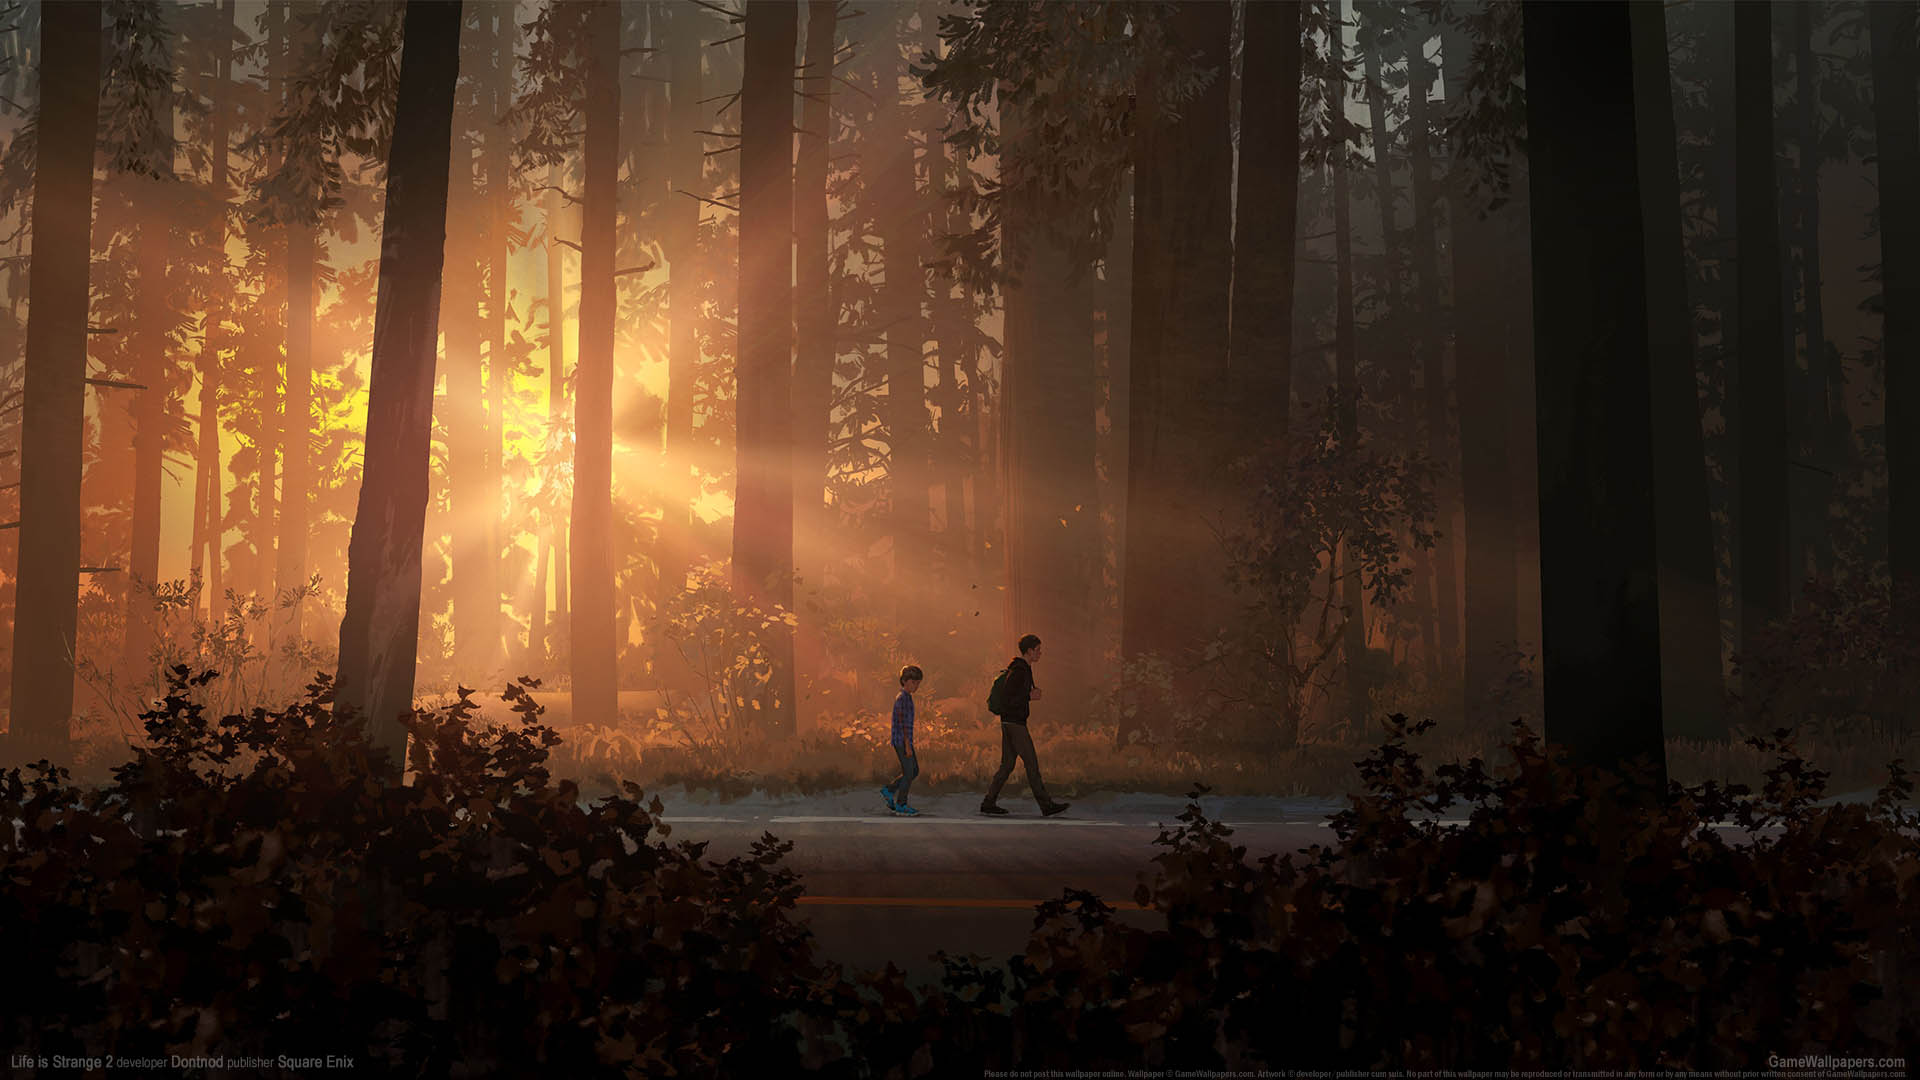 Life is Strange 2 wallpaper 01 1920x1080